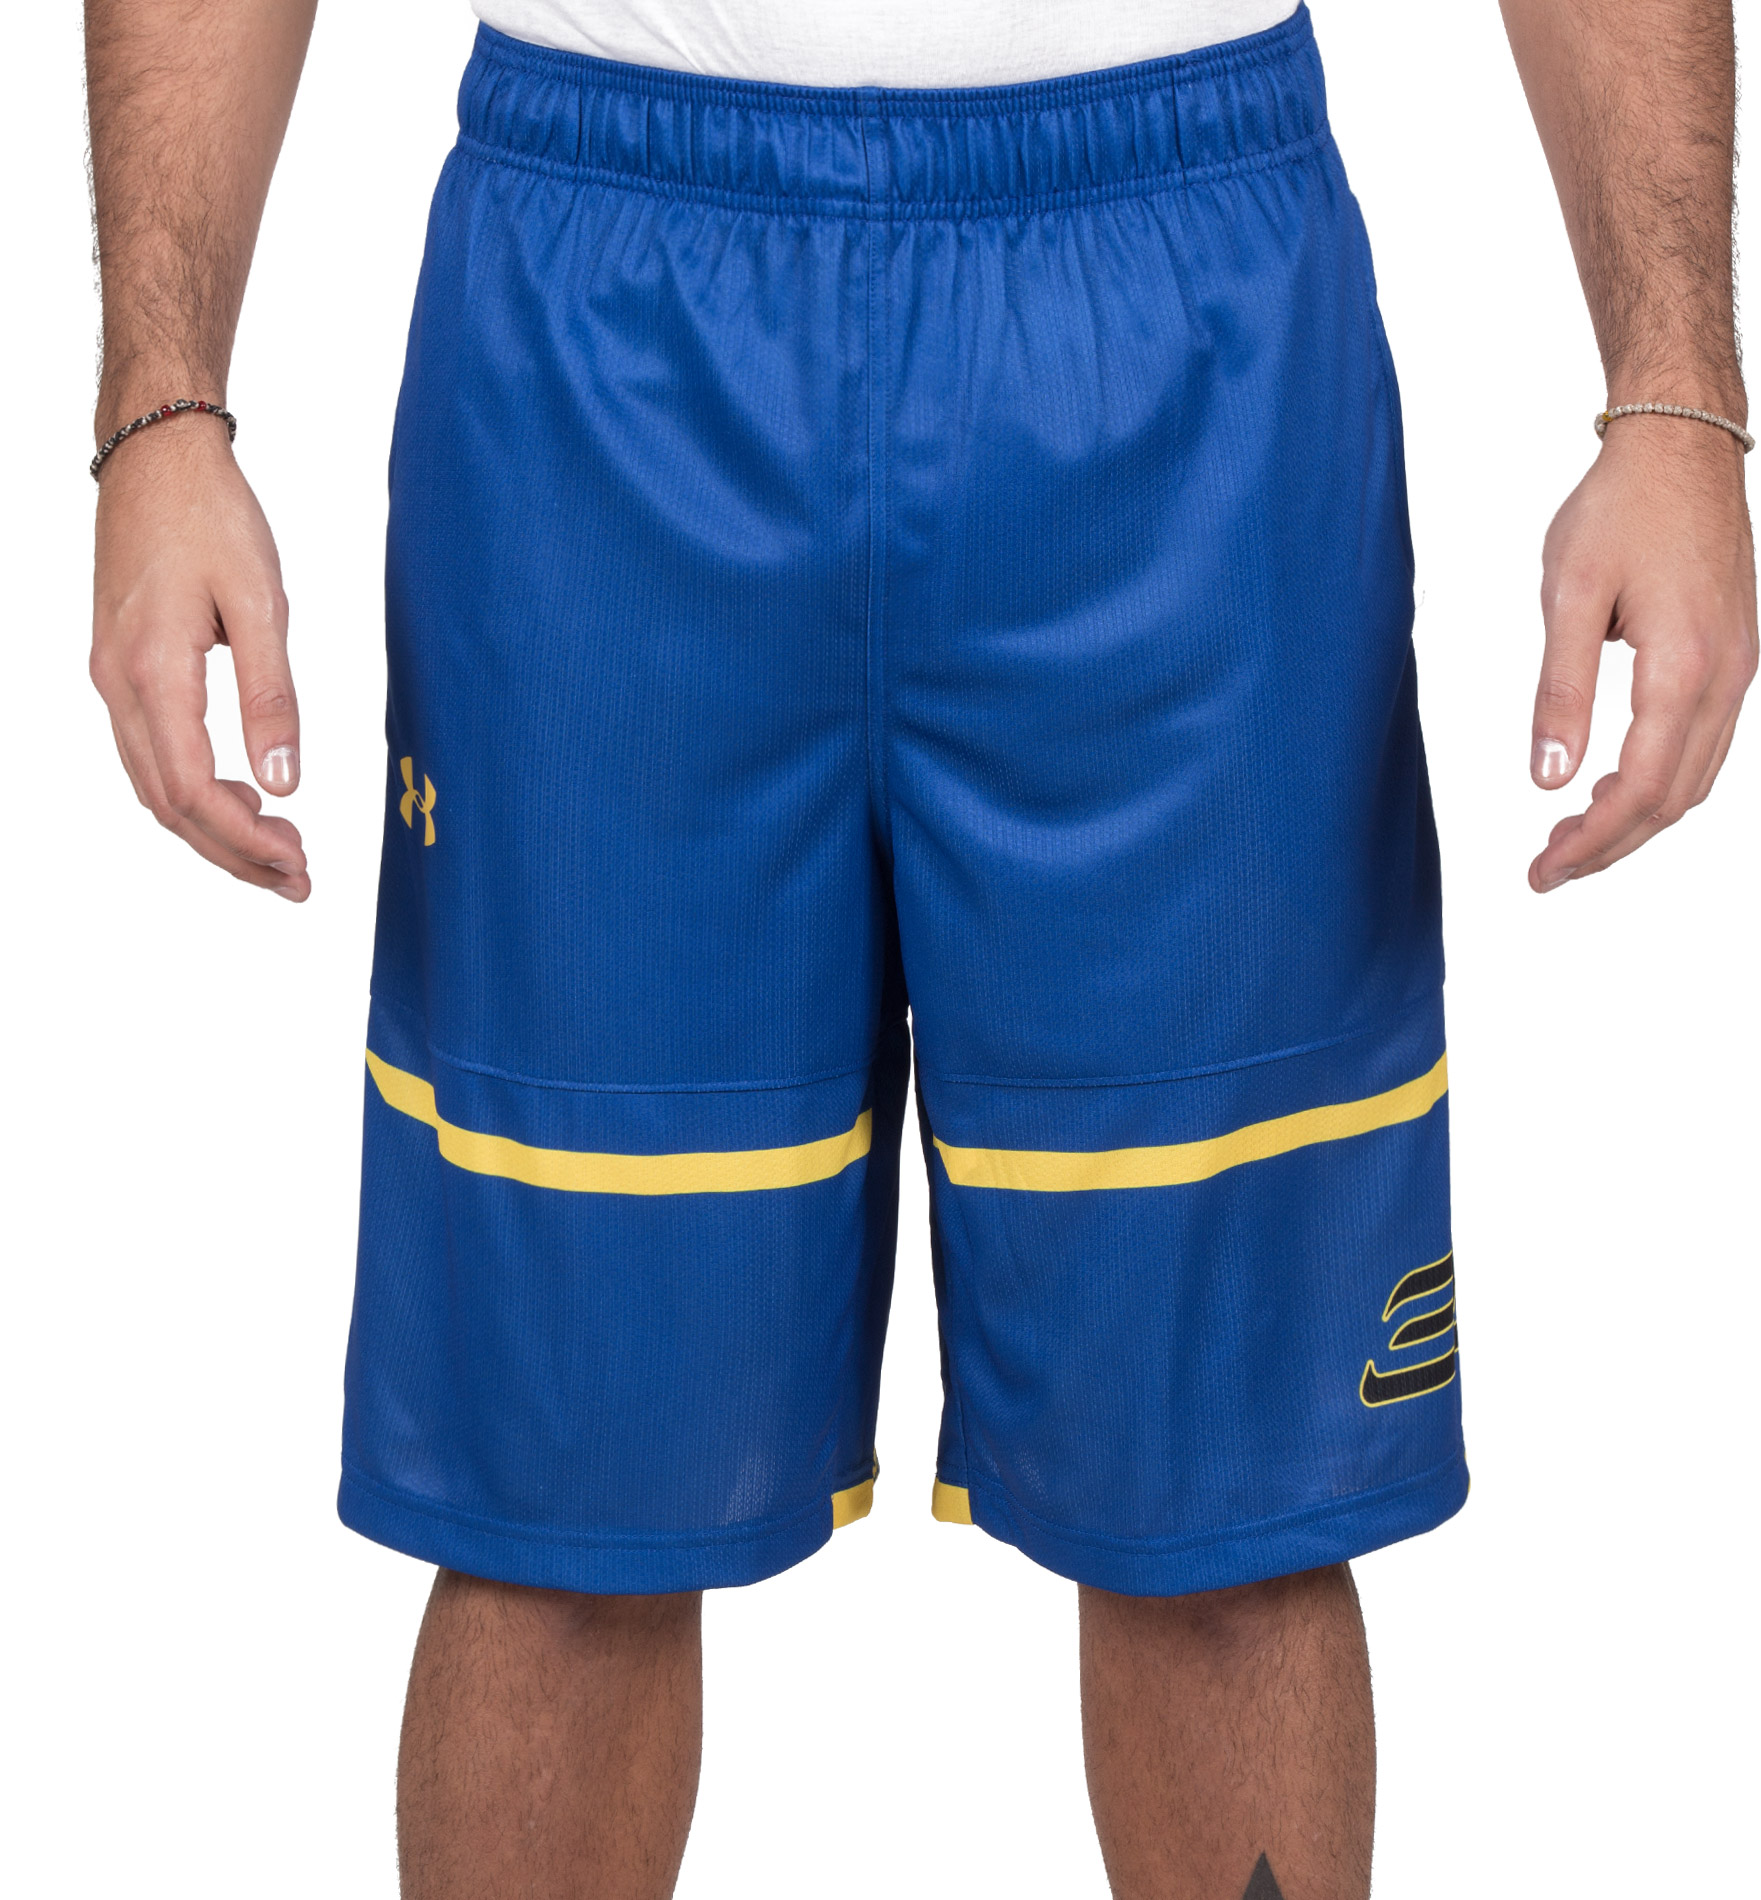 UNDER ARMOUR PICK N ROLL 11IN SHORT 1298337-400 Ρουά